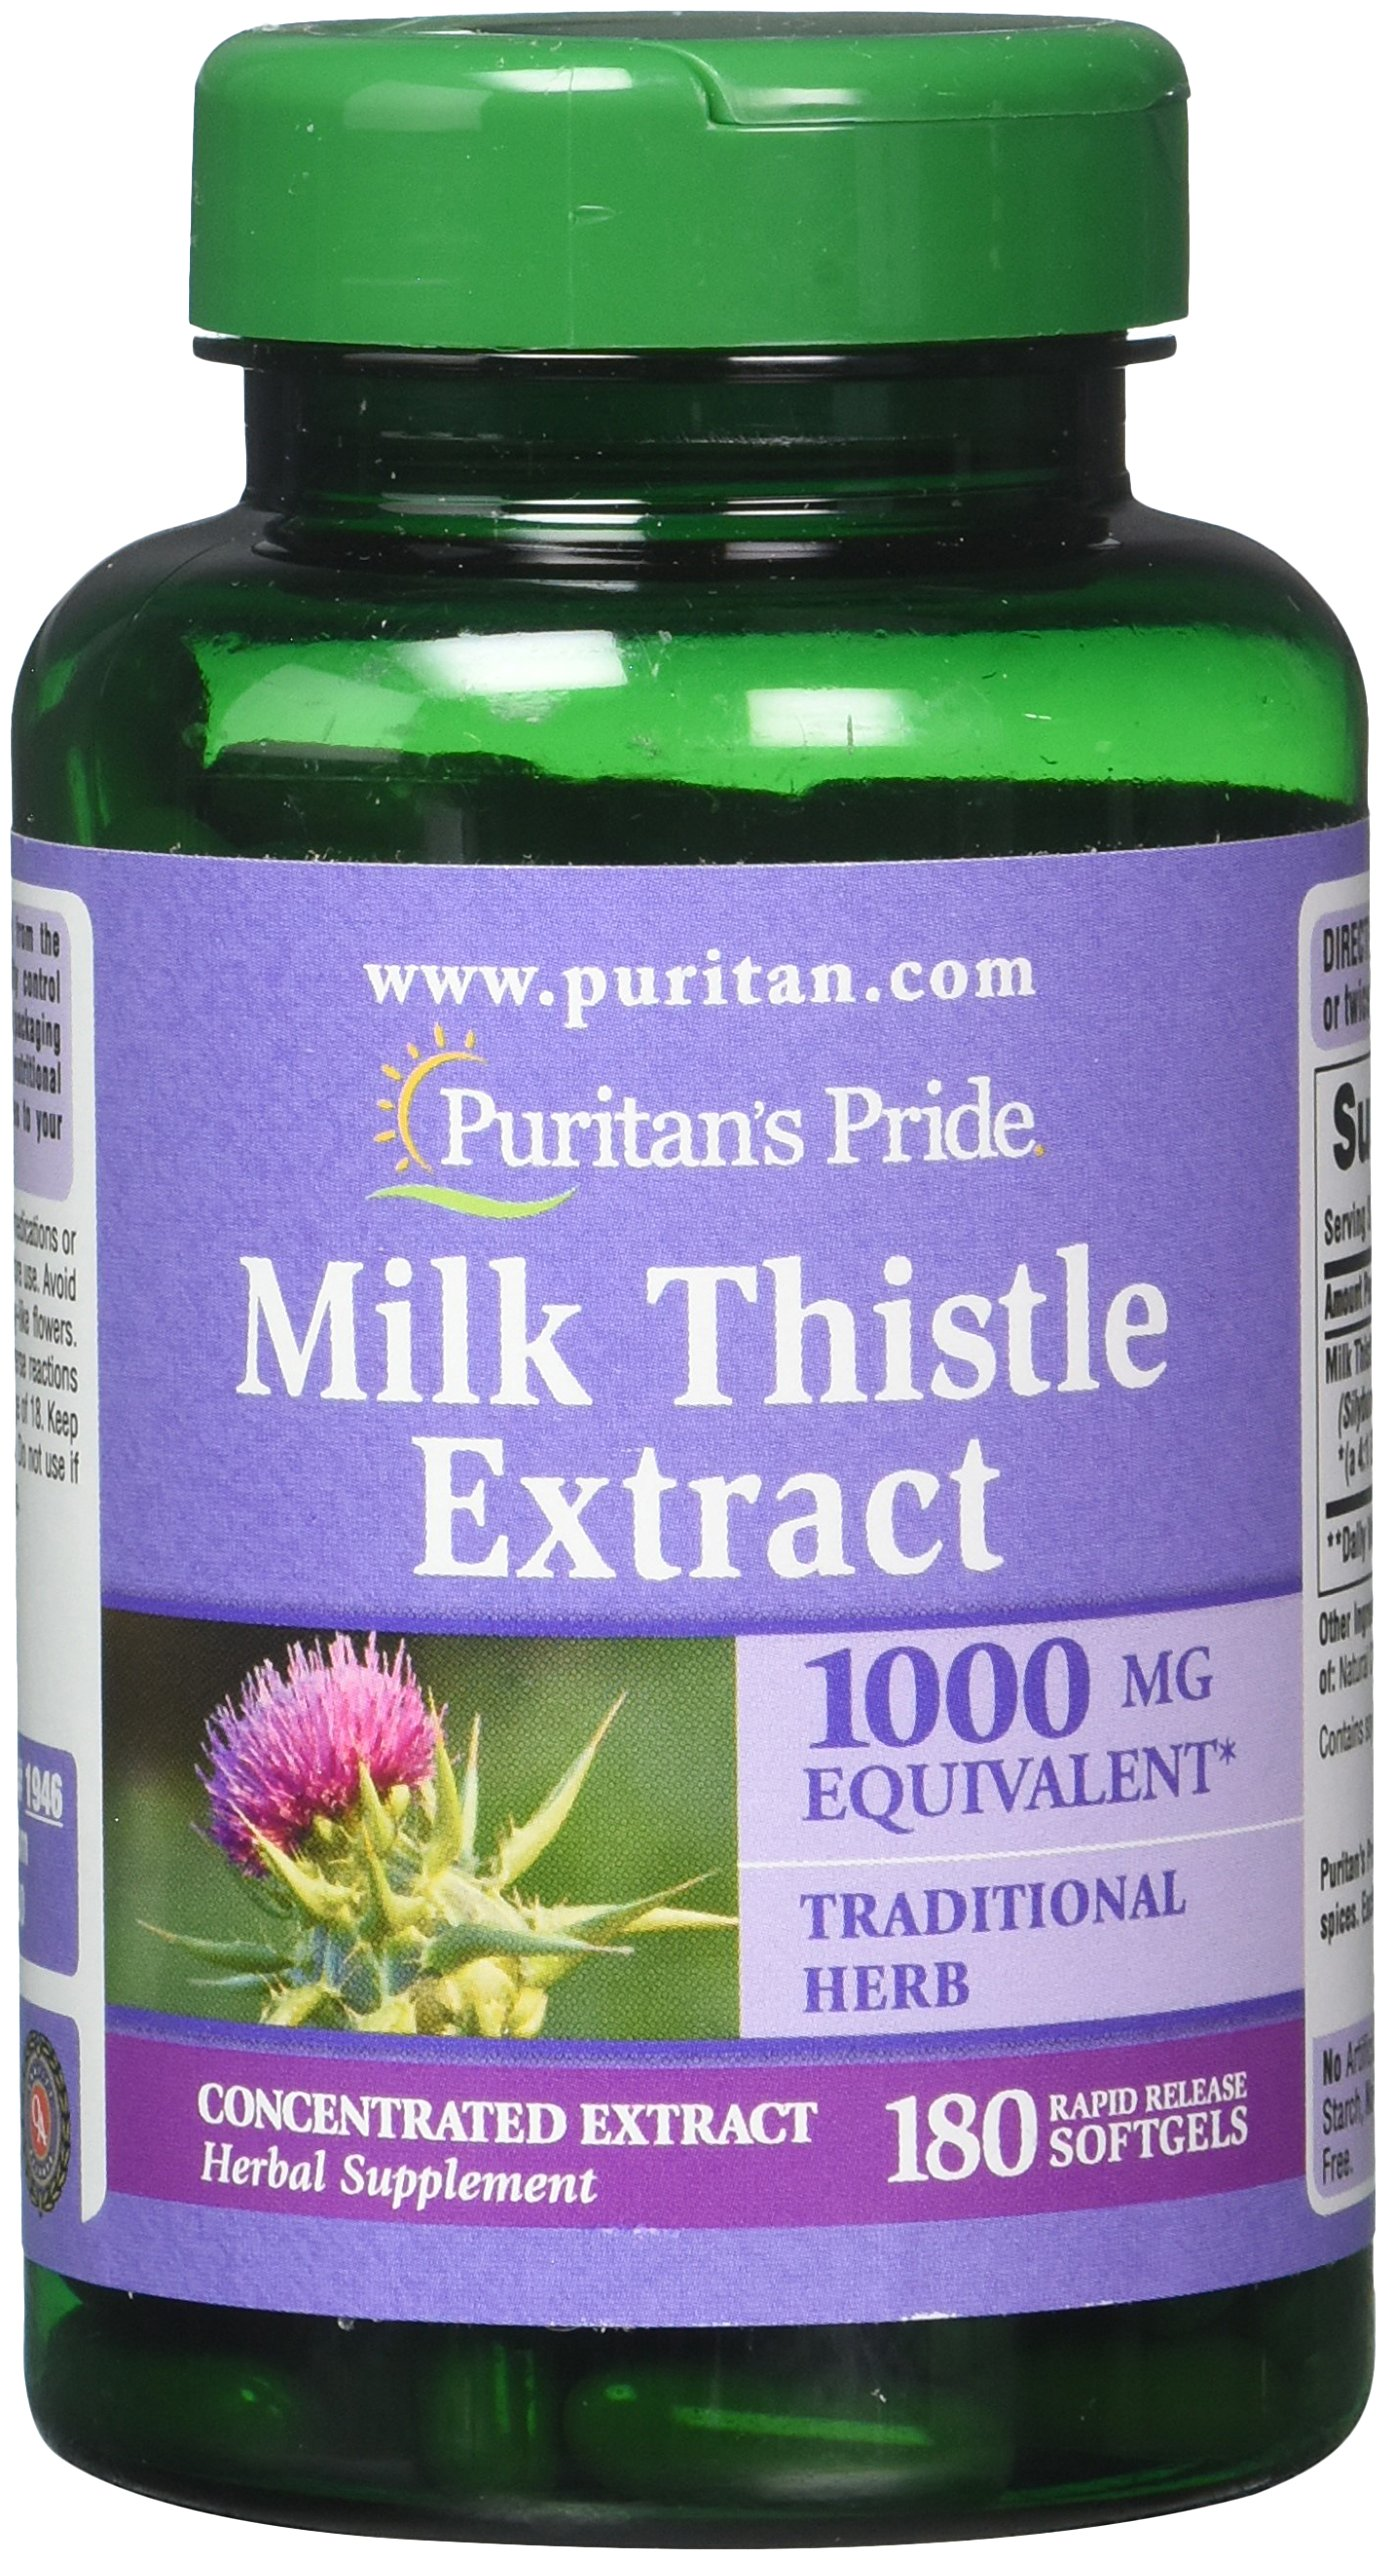 Puritan's Pride Milk Thistle 4:1 Extract 1000 Mg Softgels (Silymarin), 180 Count (Pack of 2)